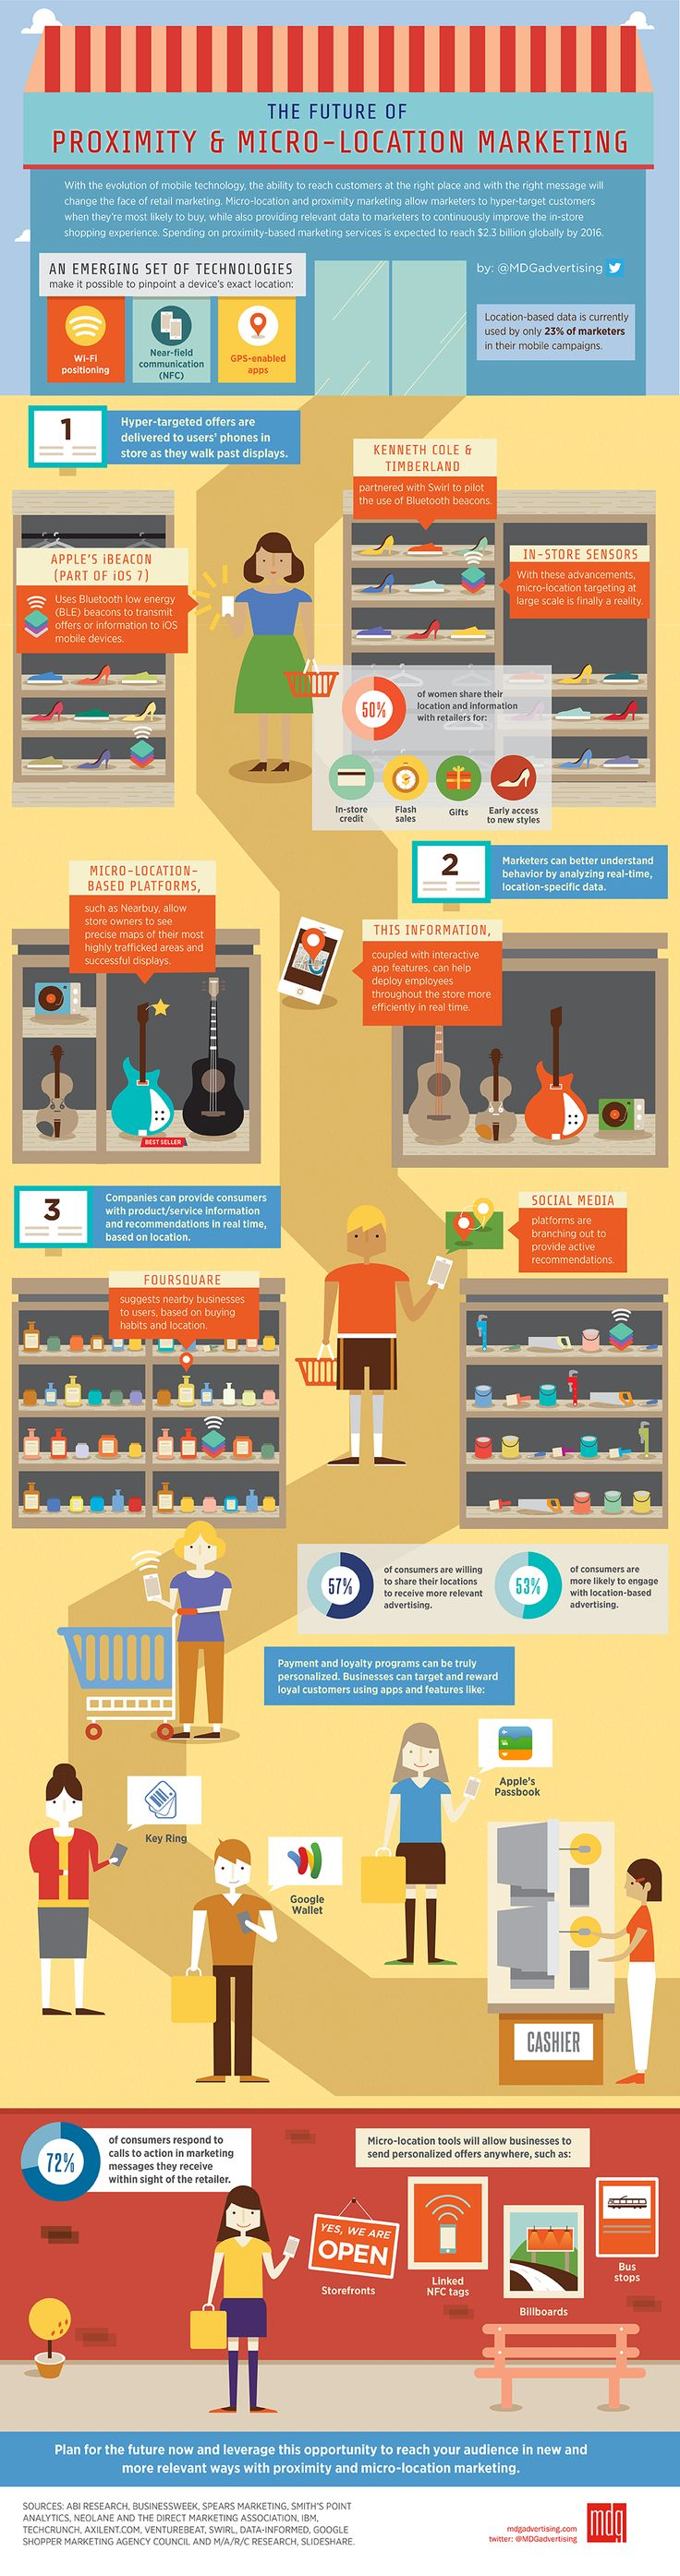 Infographic: Location-Based Marketing will dramatically change the way you shop in the very near future.